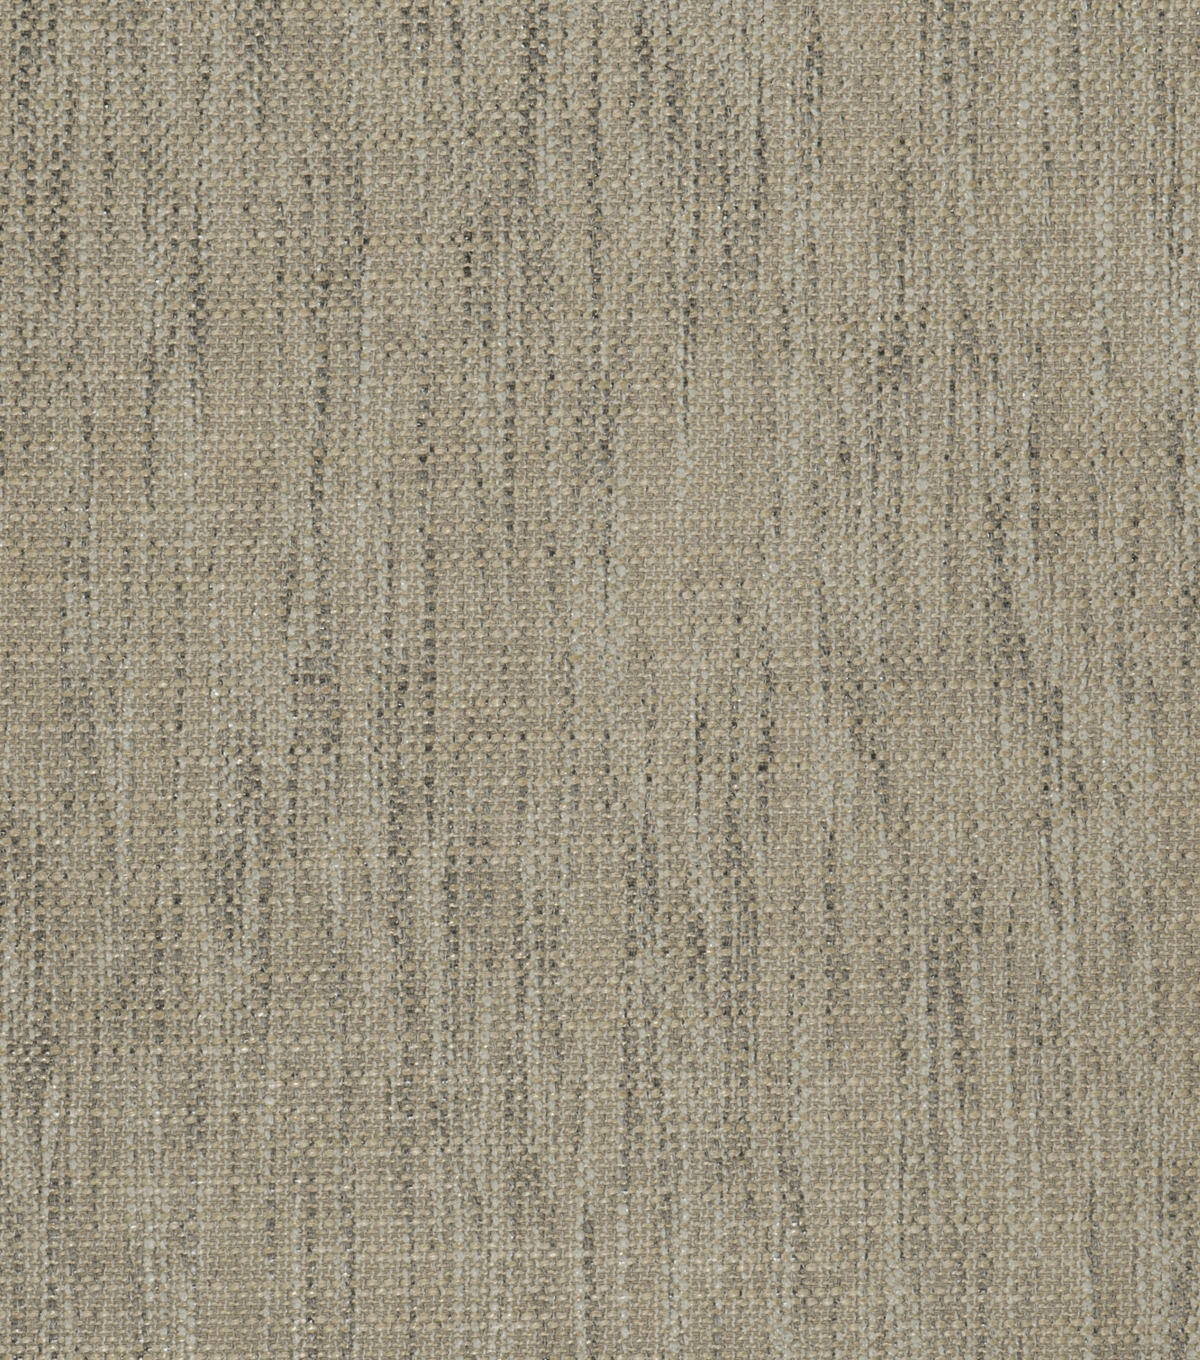 Home Decor 8x8 Fabric Swatch-Eaton Square Countdown Cement